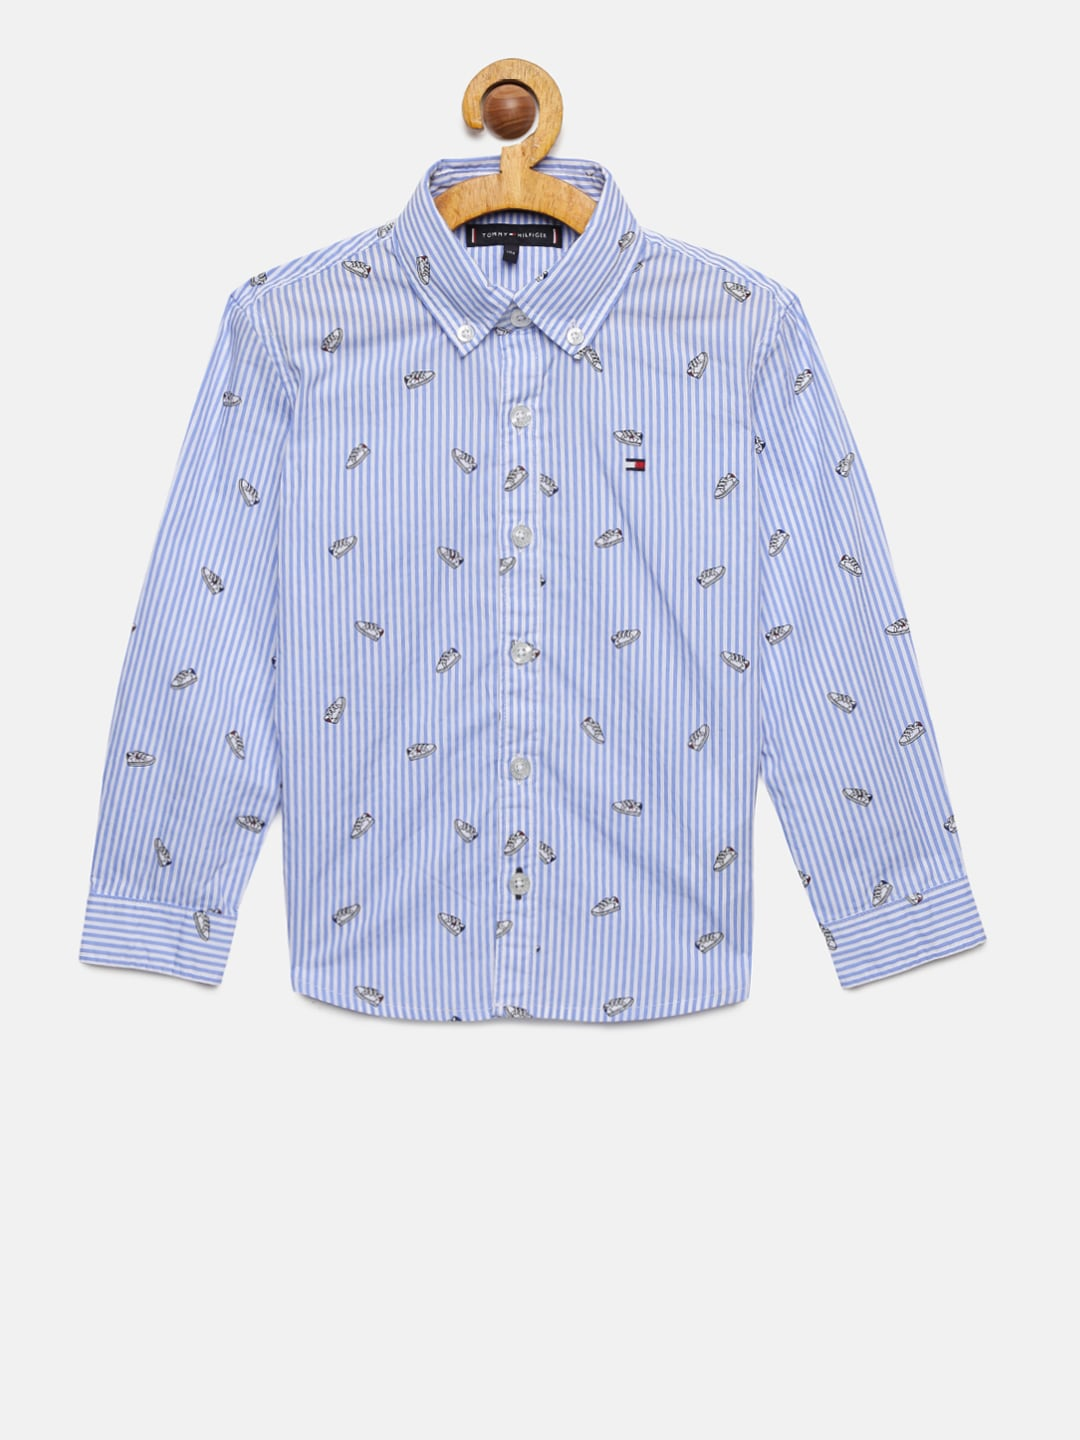 Tommy Hilfiger Boys White & Blue Regular Fit Striped Casual Shirt